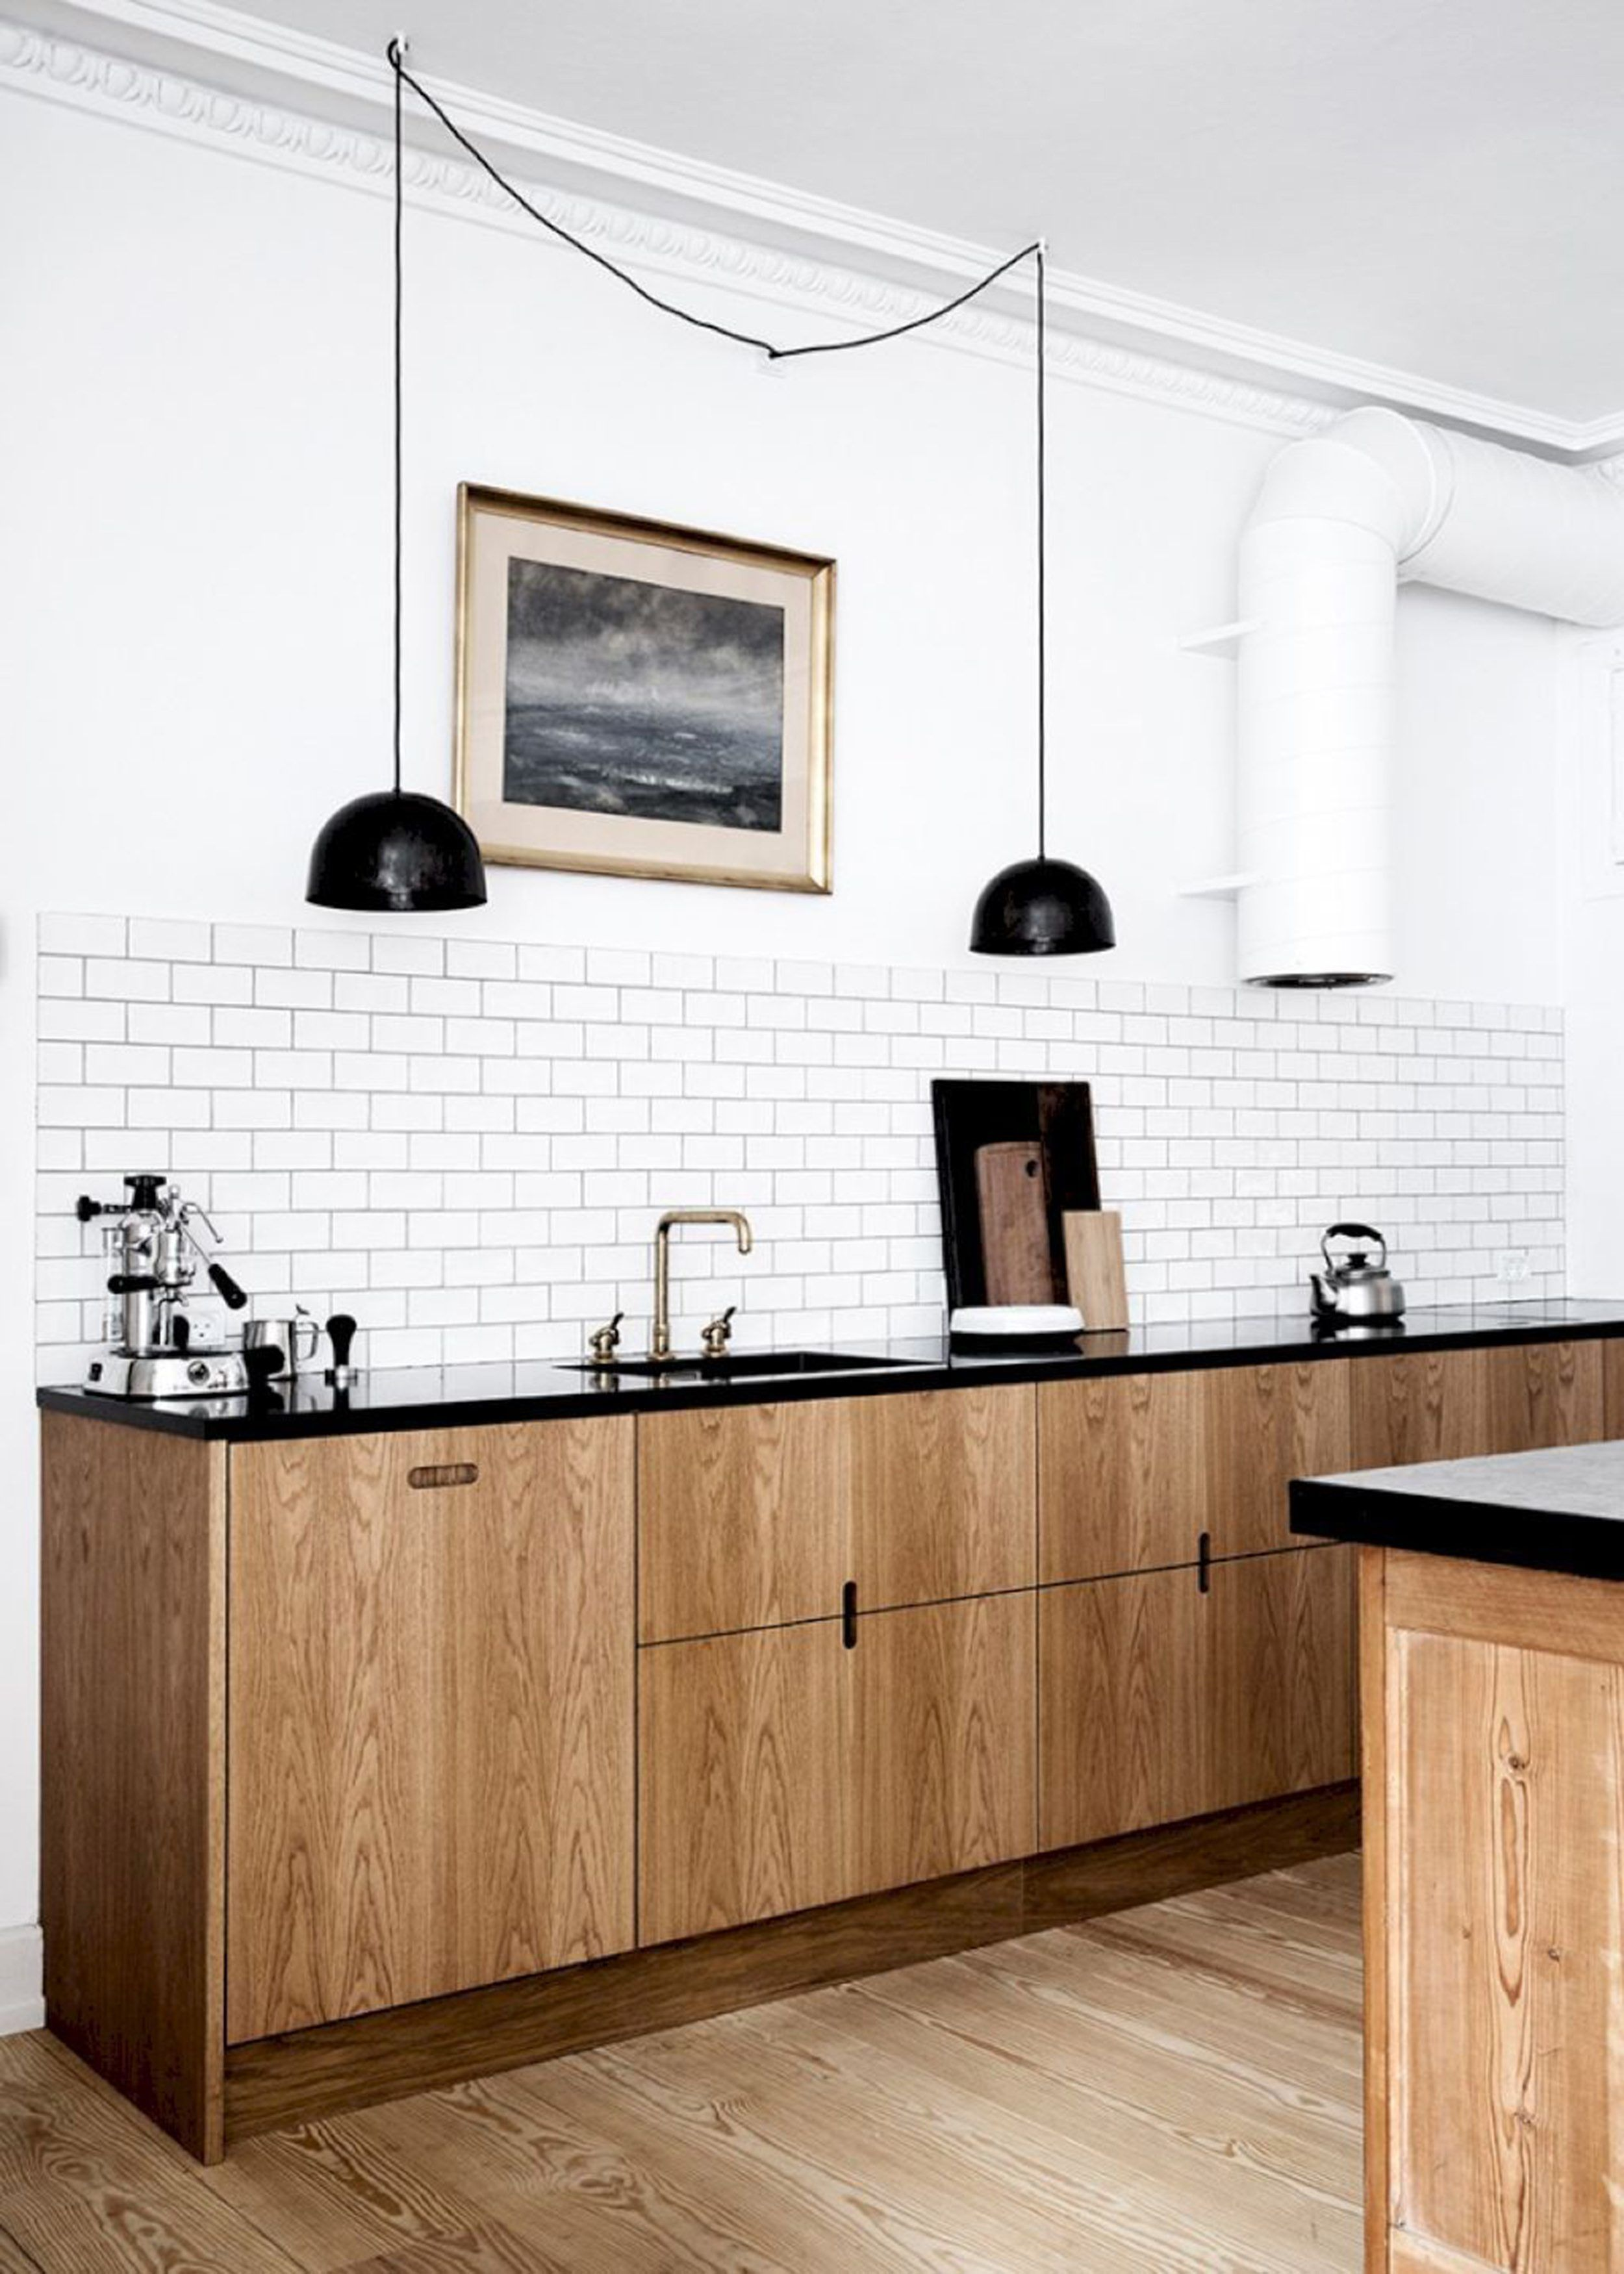 Is No Hardware The New Hardware Trend For Kitchens Scandinavian Kitchen Design Kitchen Design Color Modern Kitchen